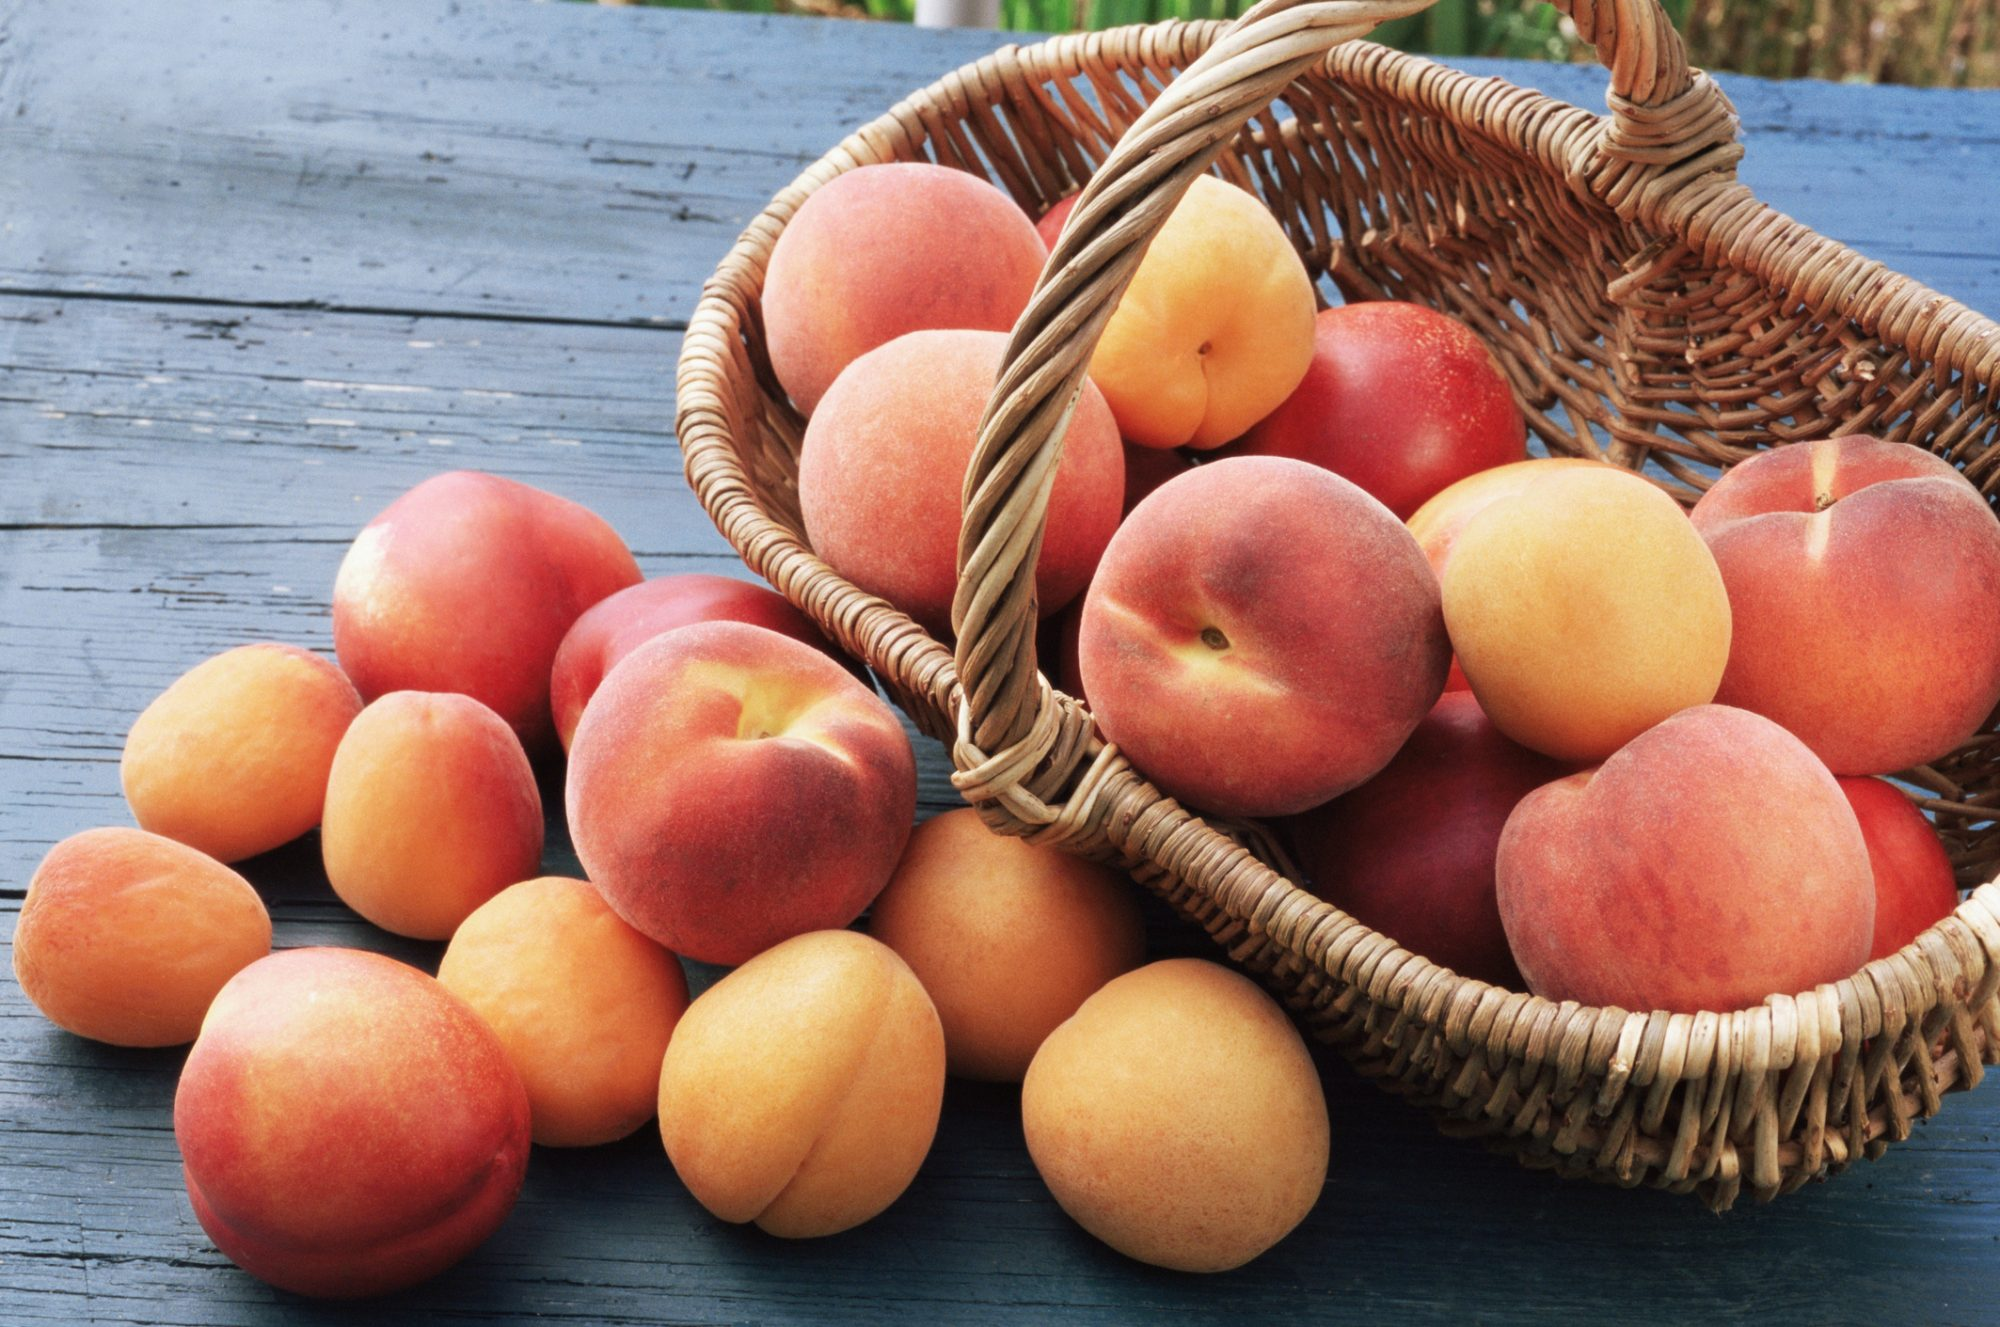 Basket of peaches and apricots